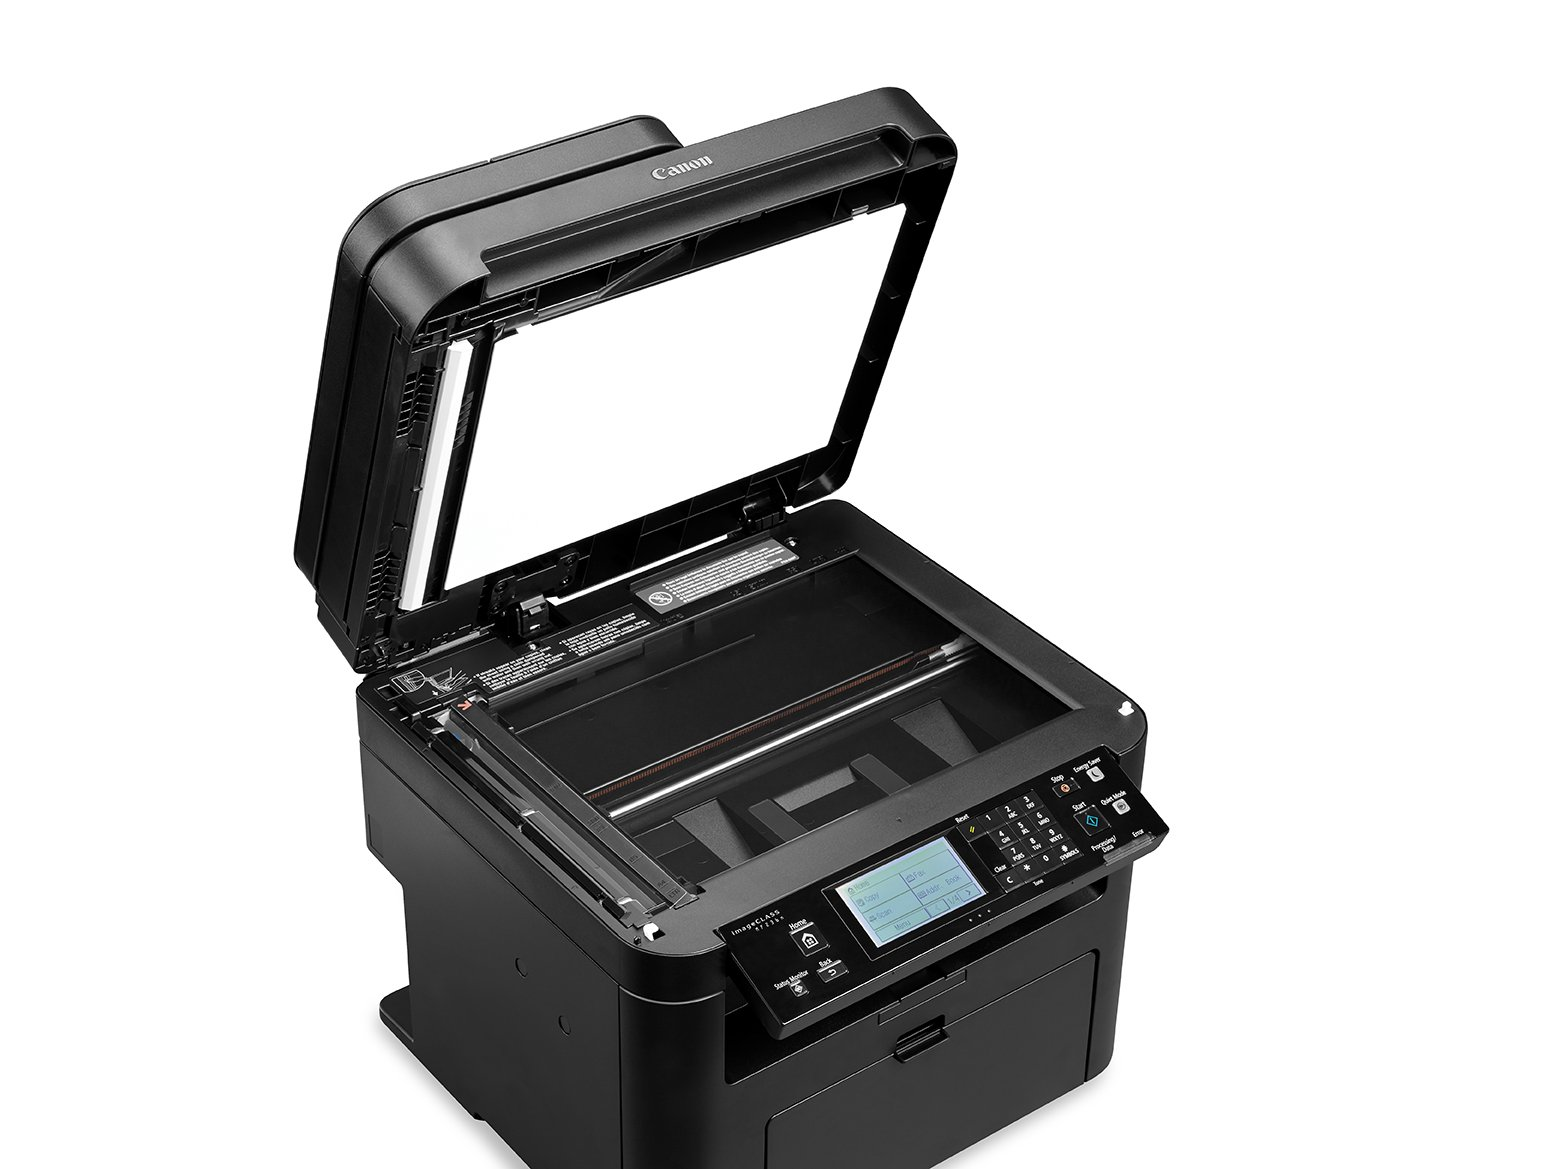 Canon imageCLASS MF236n All in One, Mobile Ready Printer, Black by Canon (Image #6)